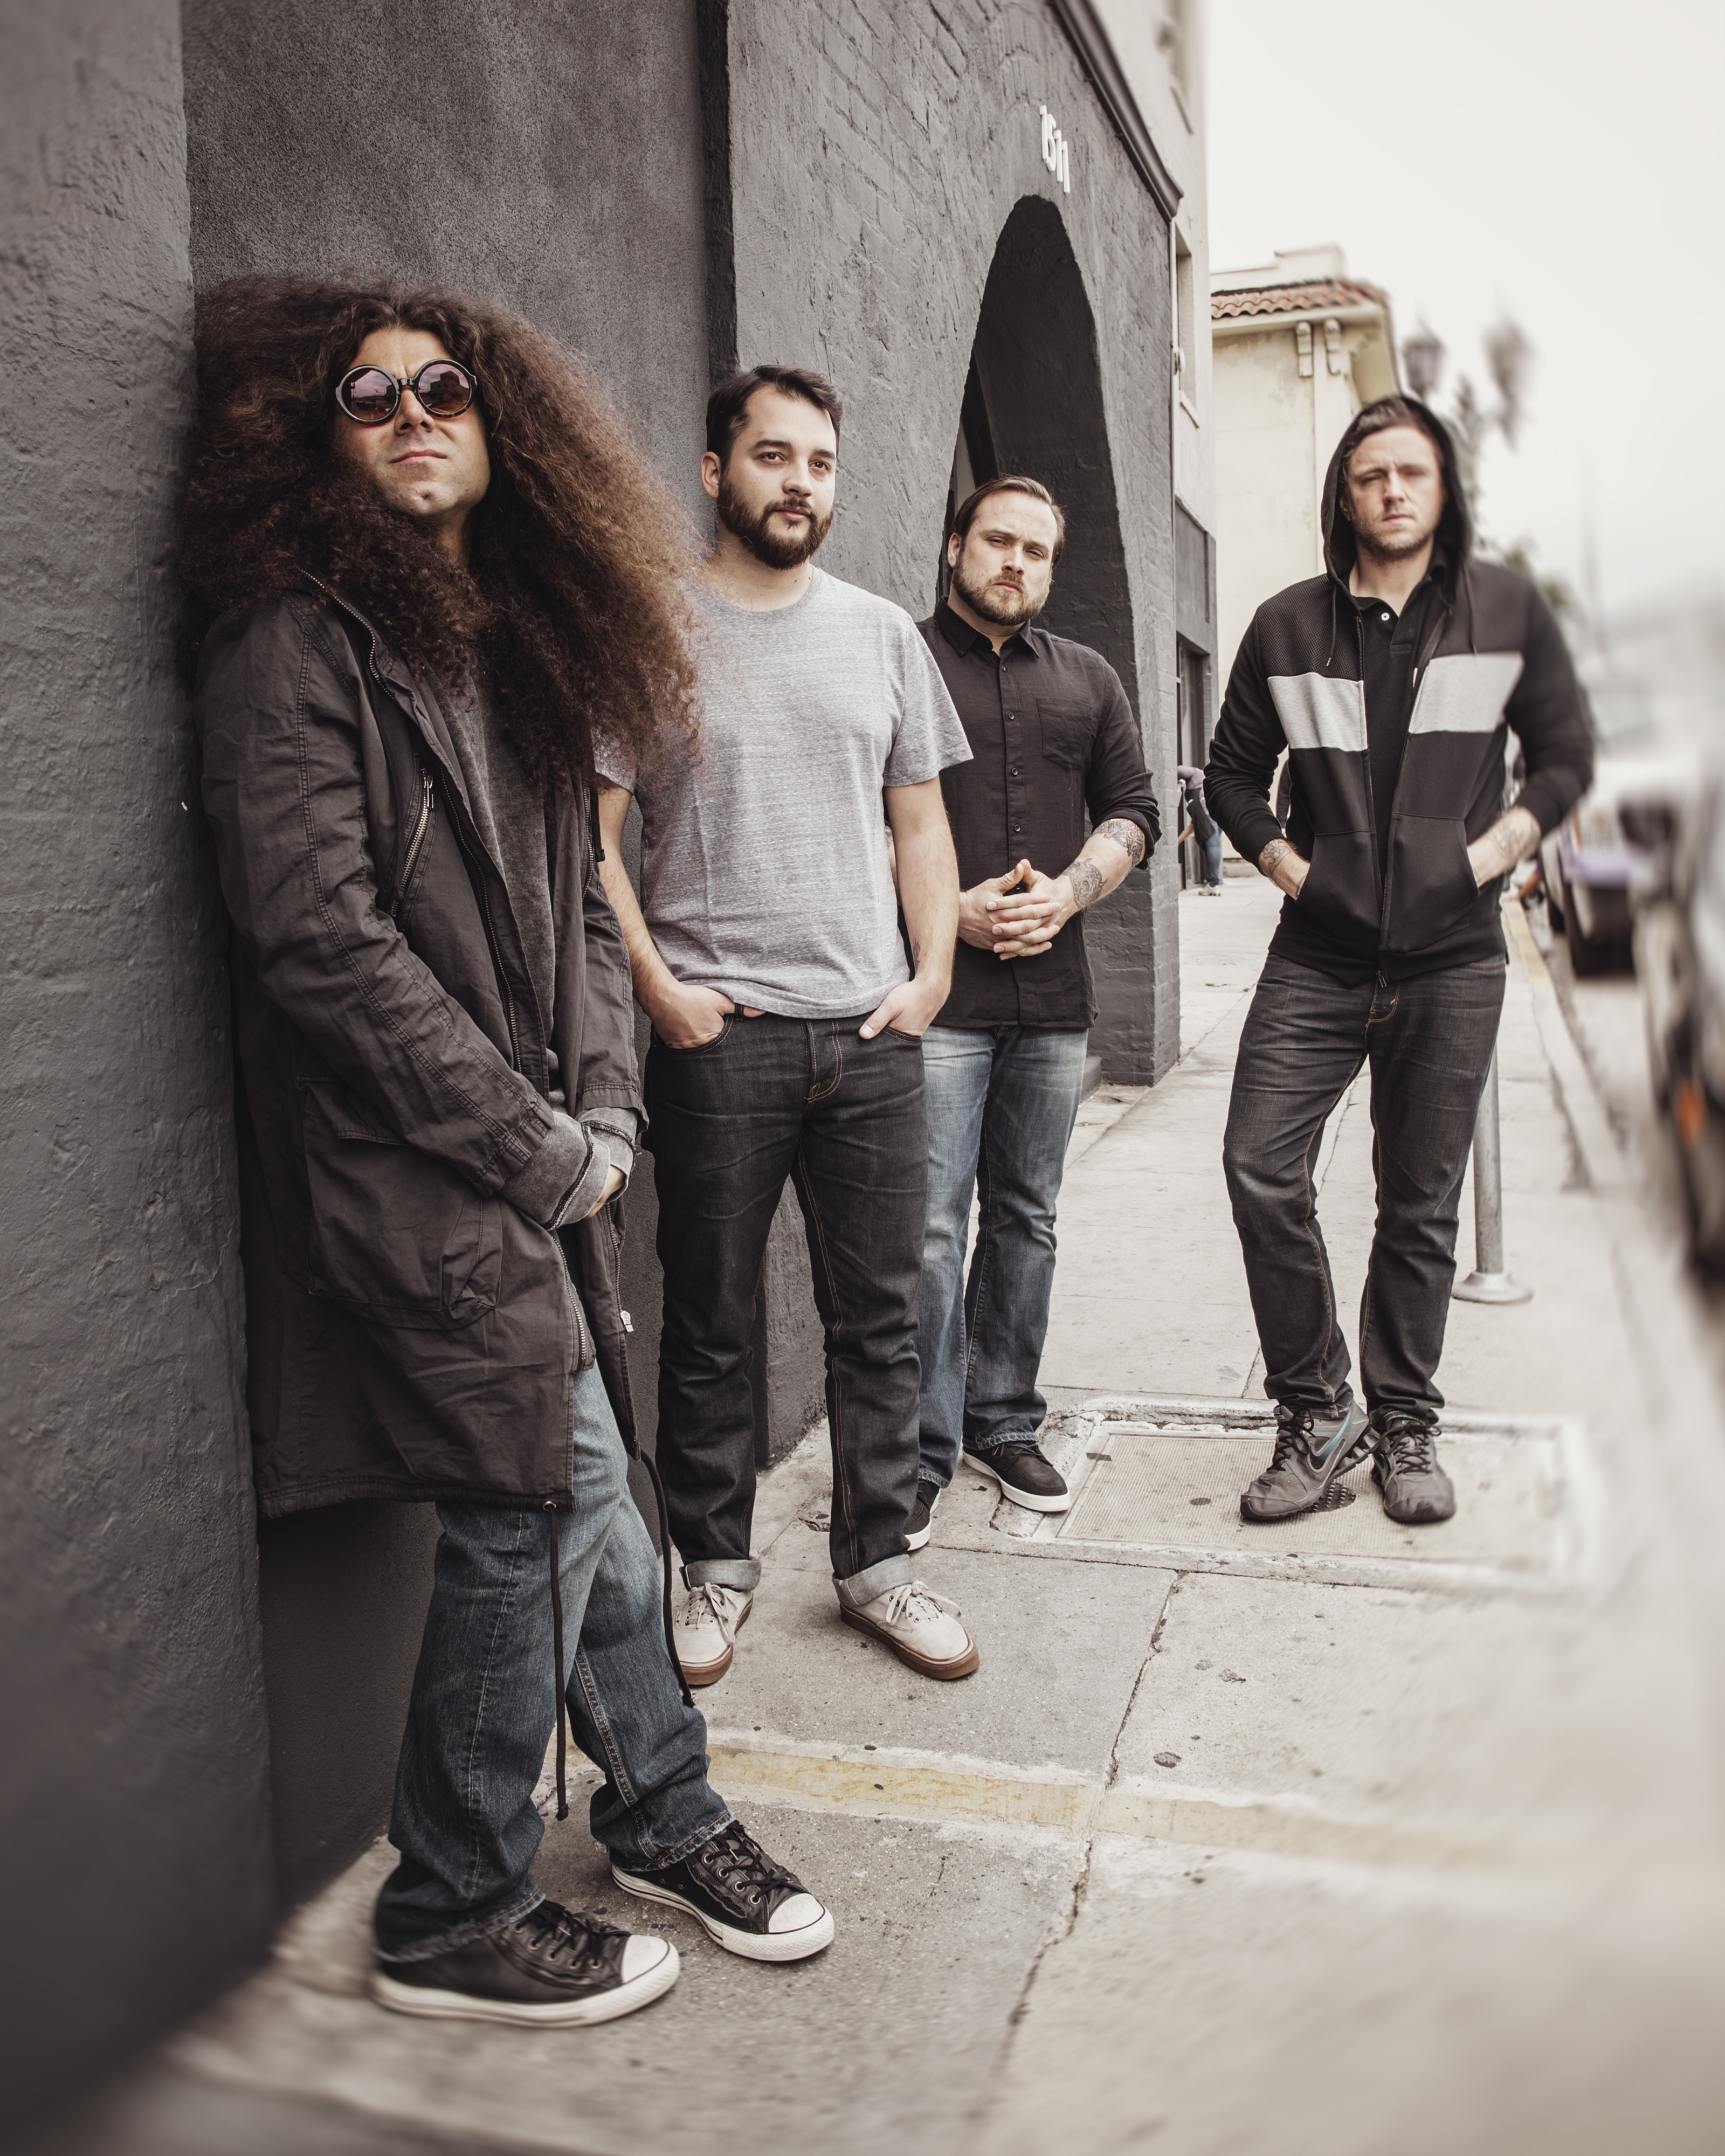 Coheed and cambria to play latest neverender incarnation in multi dimensional progressive rock band coheed and cambria are set to play landmark concept album good apollo im burning star iv in its entirety at two kristyandbryce Choice Image